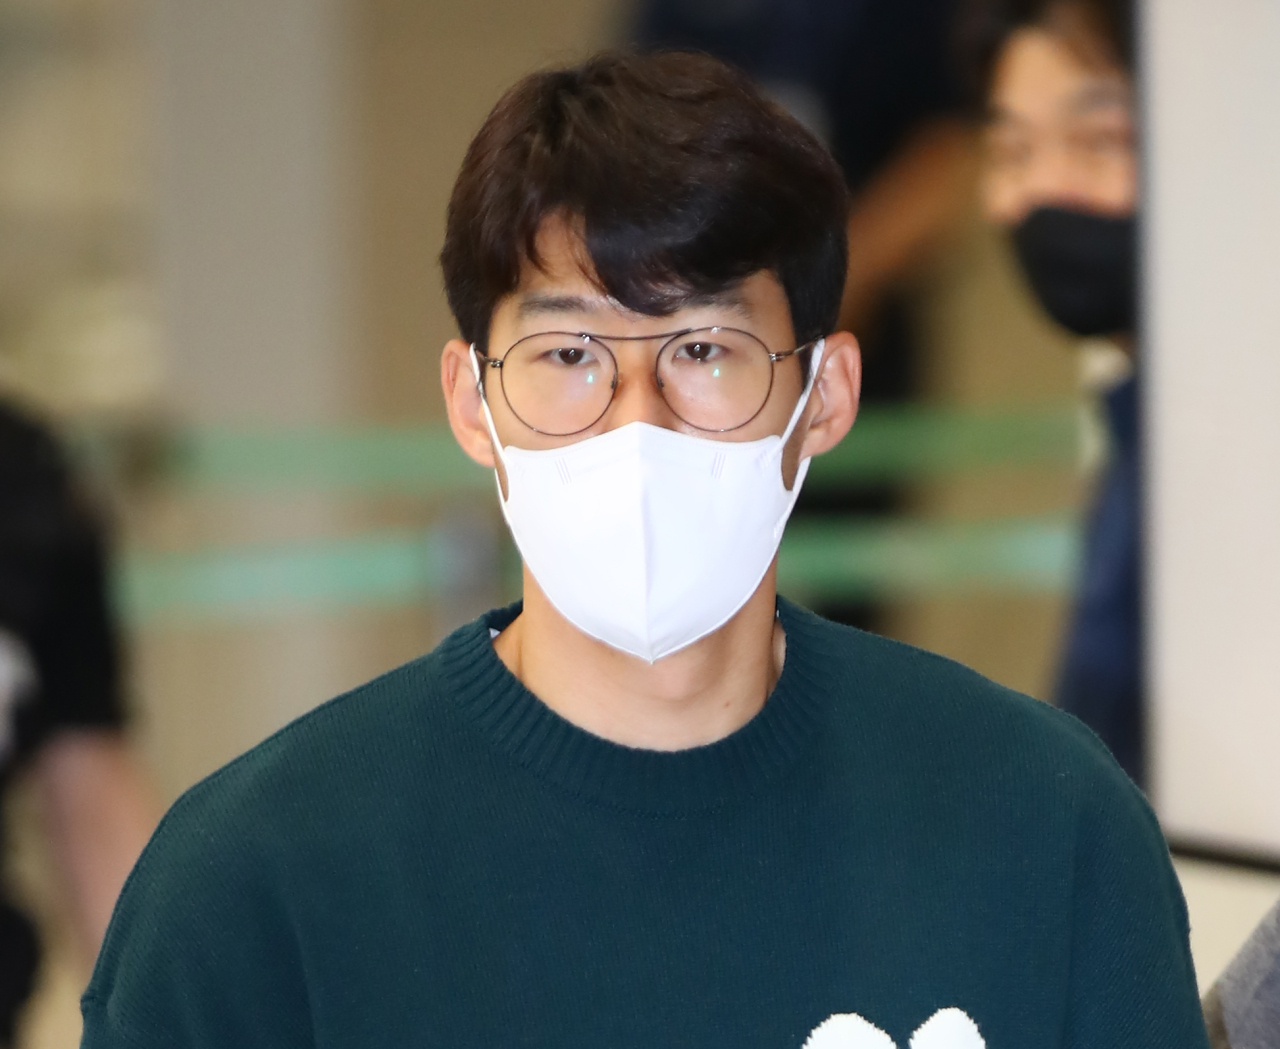 Son Heung-min on Tuesday arrives at Incheon International Airport to report to the Korean national men's football team ahead of World Cup qualifiers against Syria and Iran. (Yonhap)